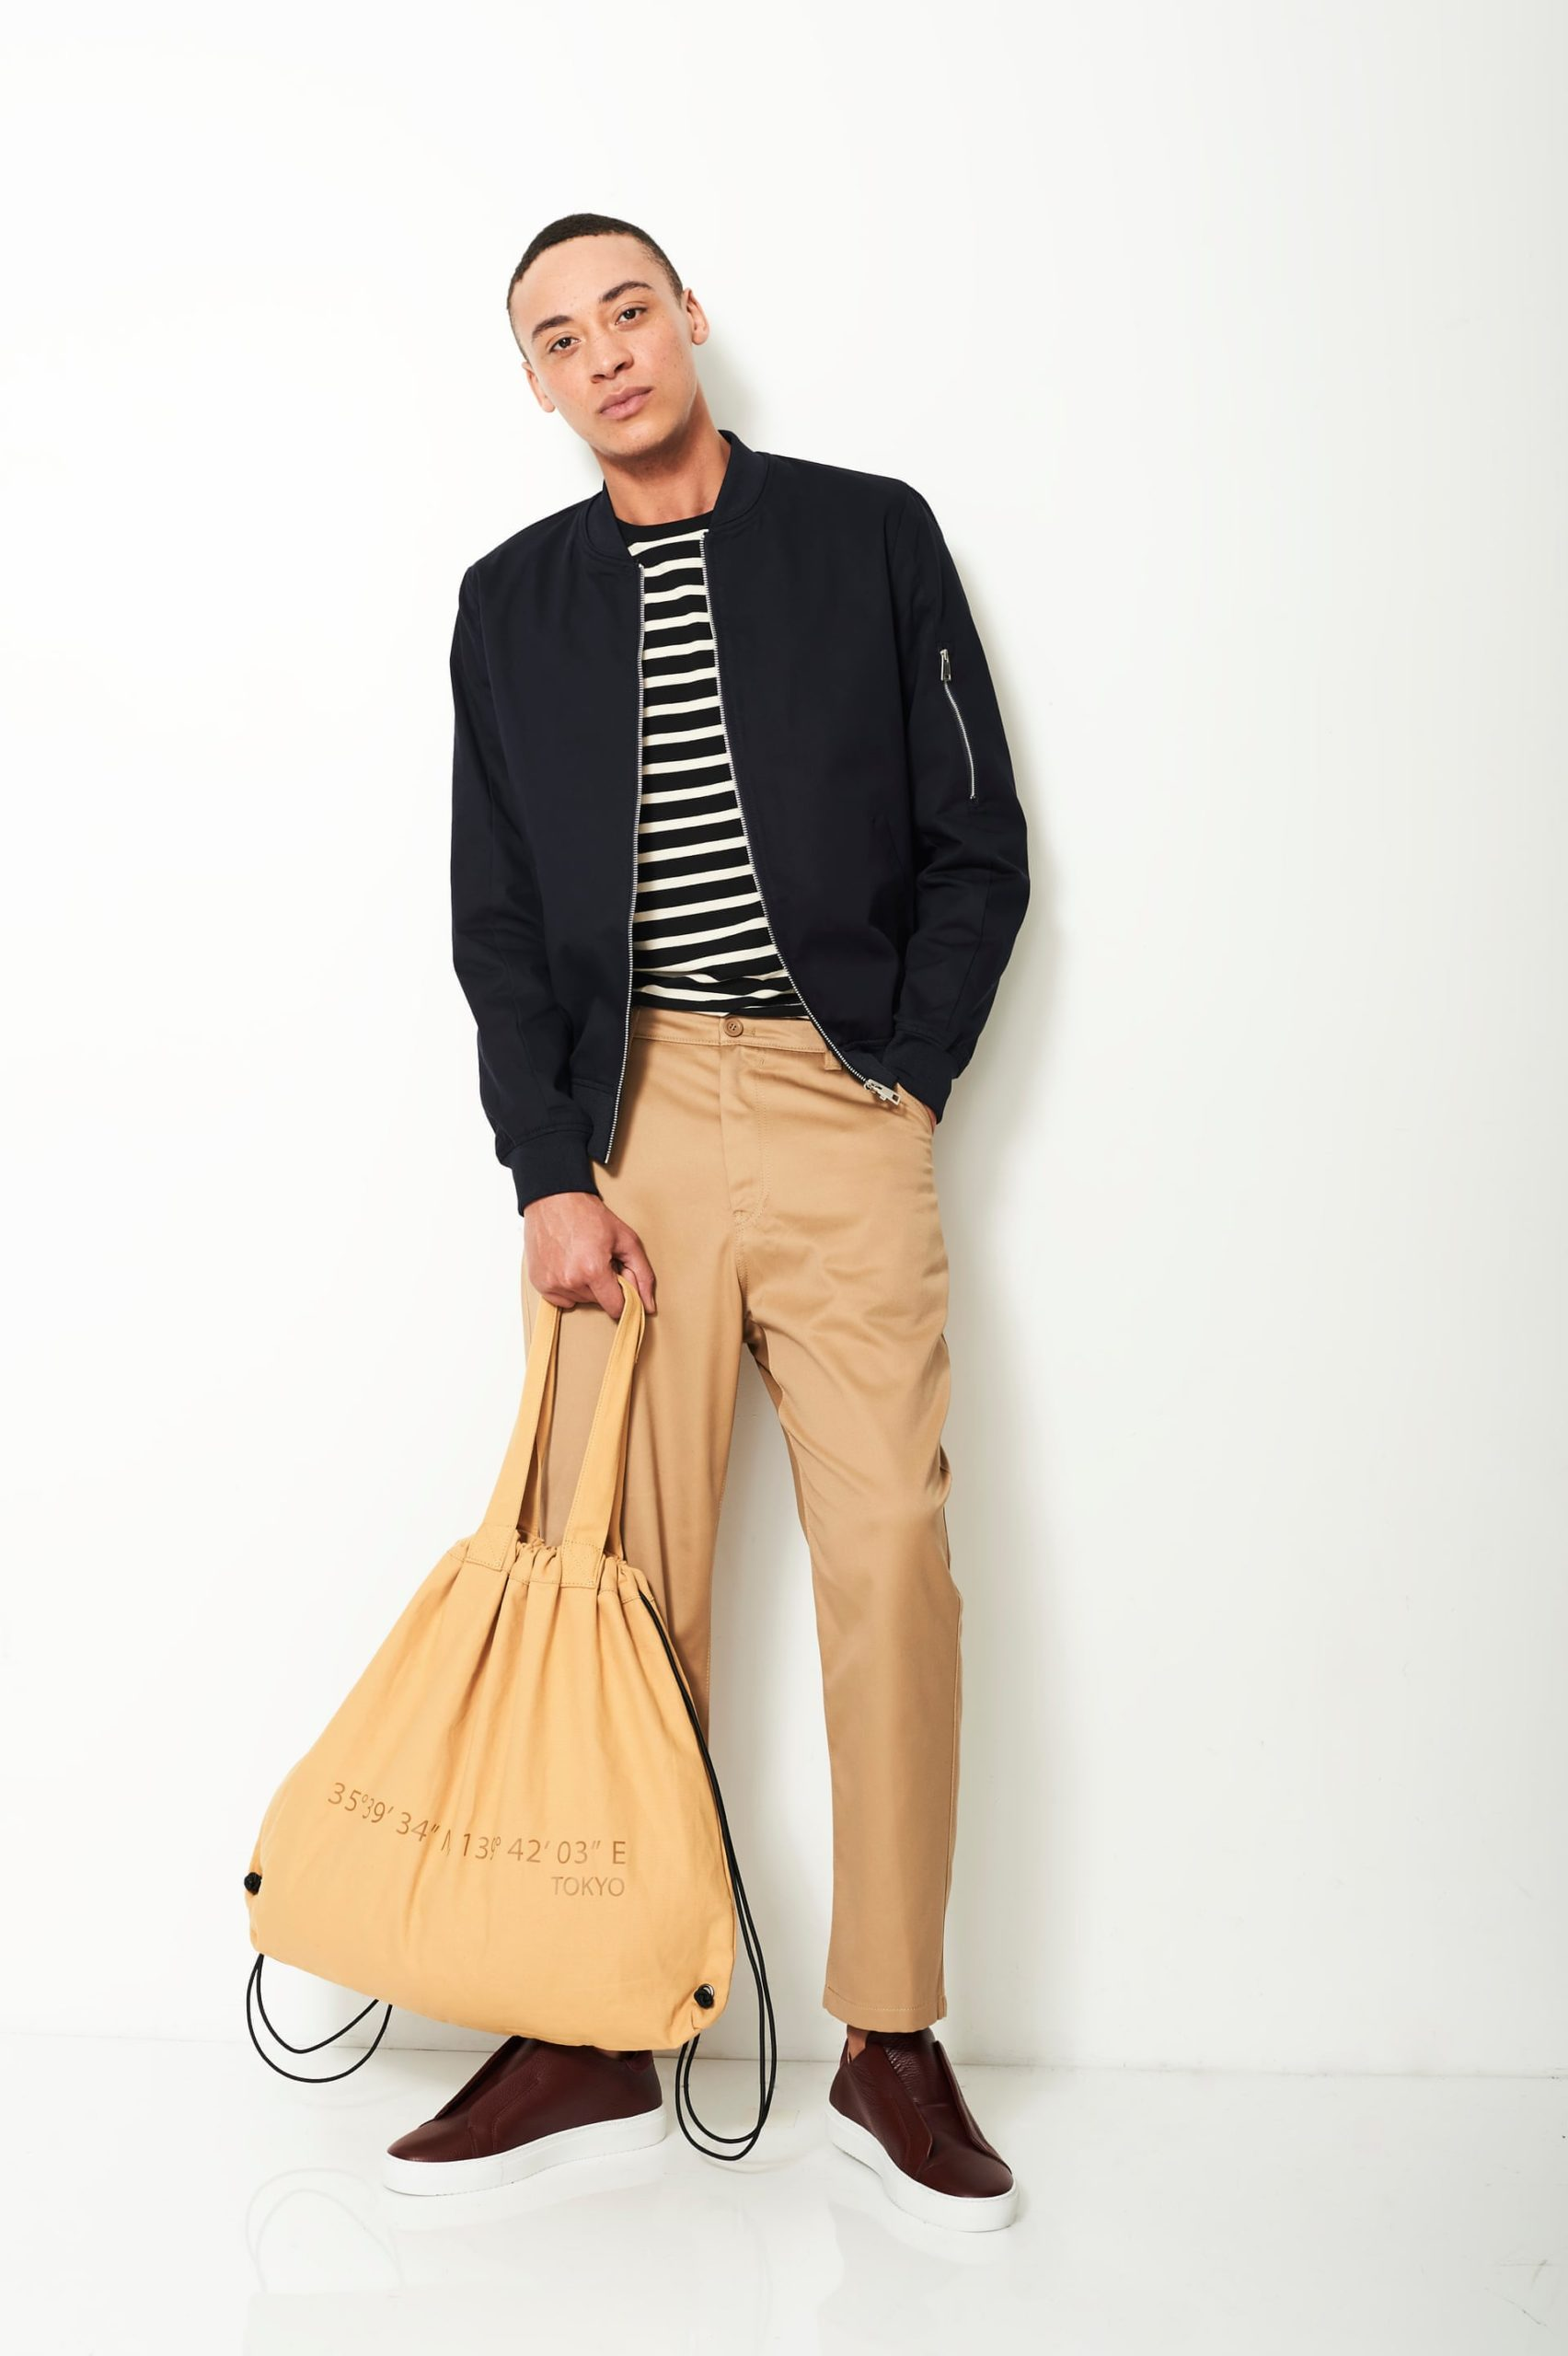 Striped Long Sleeve Shirt with a Sports Coat and a Pair of Khaki Pant